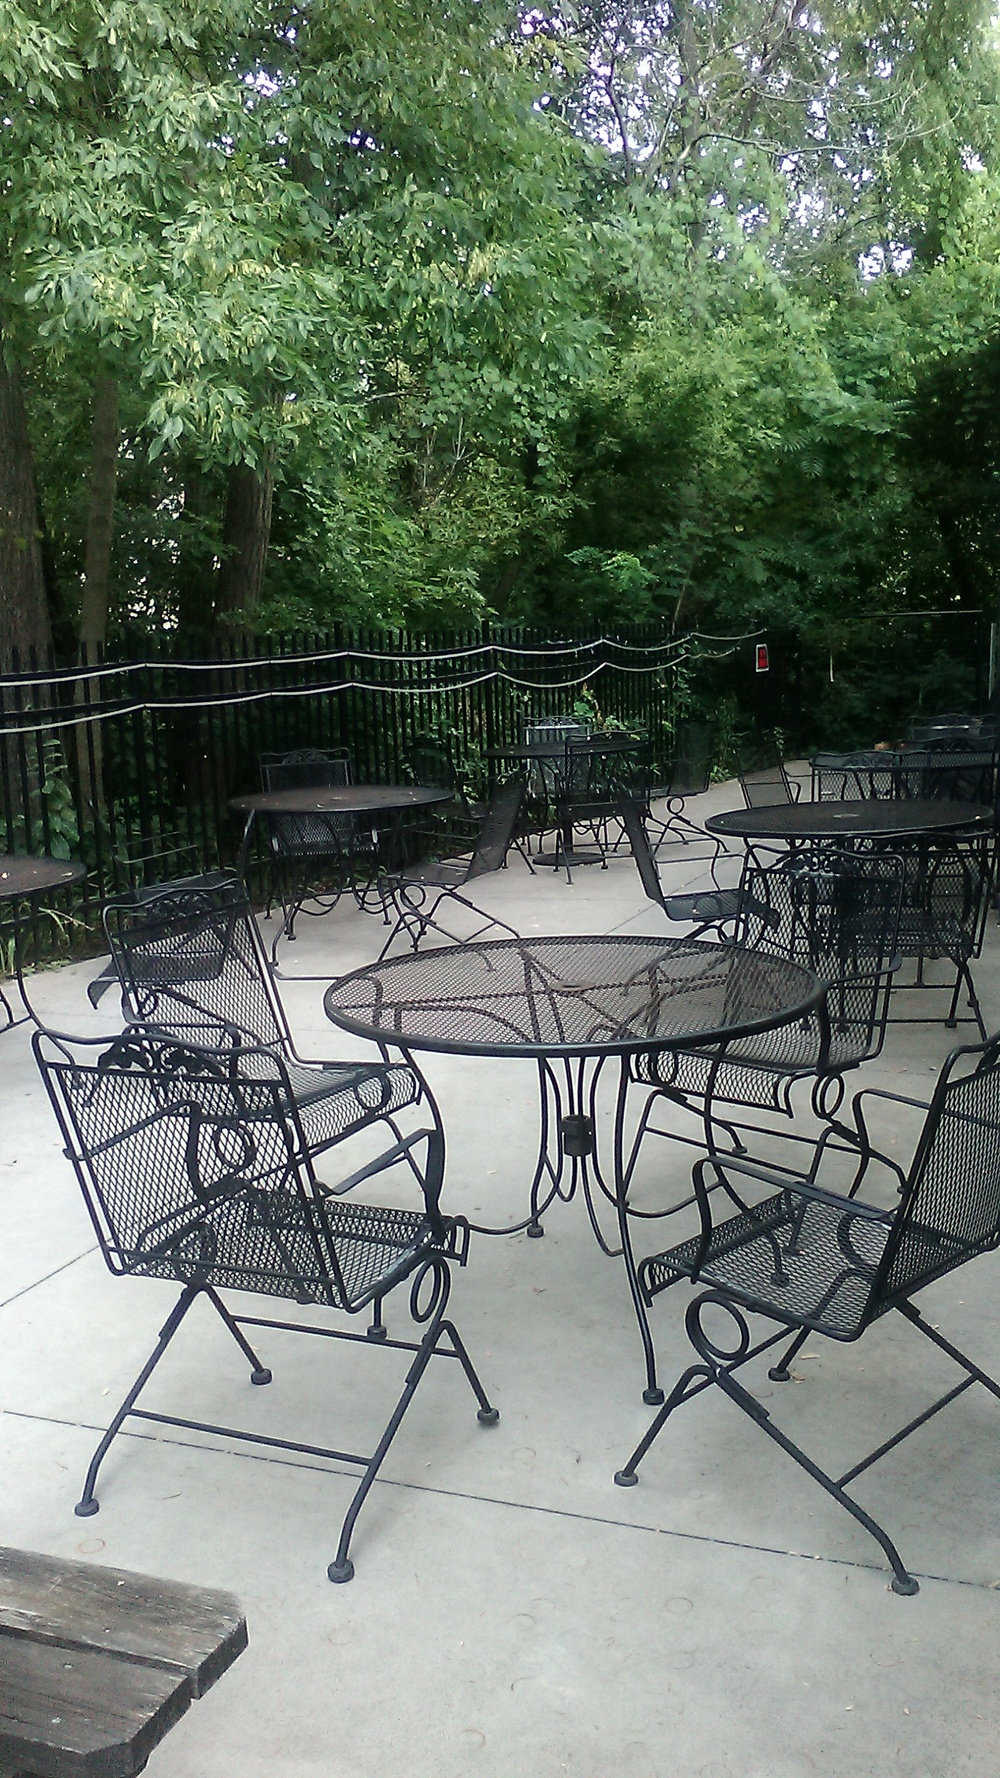 Our shaded creek-side patio seats around 30 and is secluded and perfect for enjoying an afternoon or evening of food & drinks with friends.